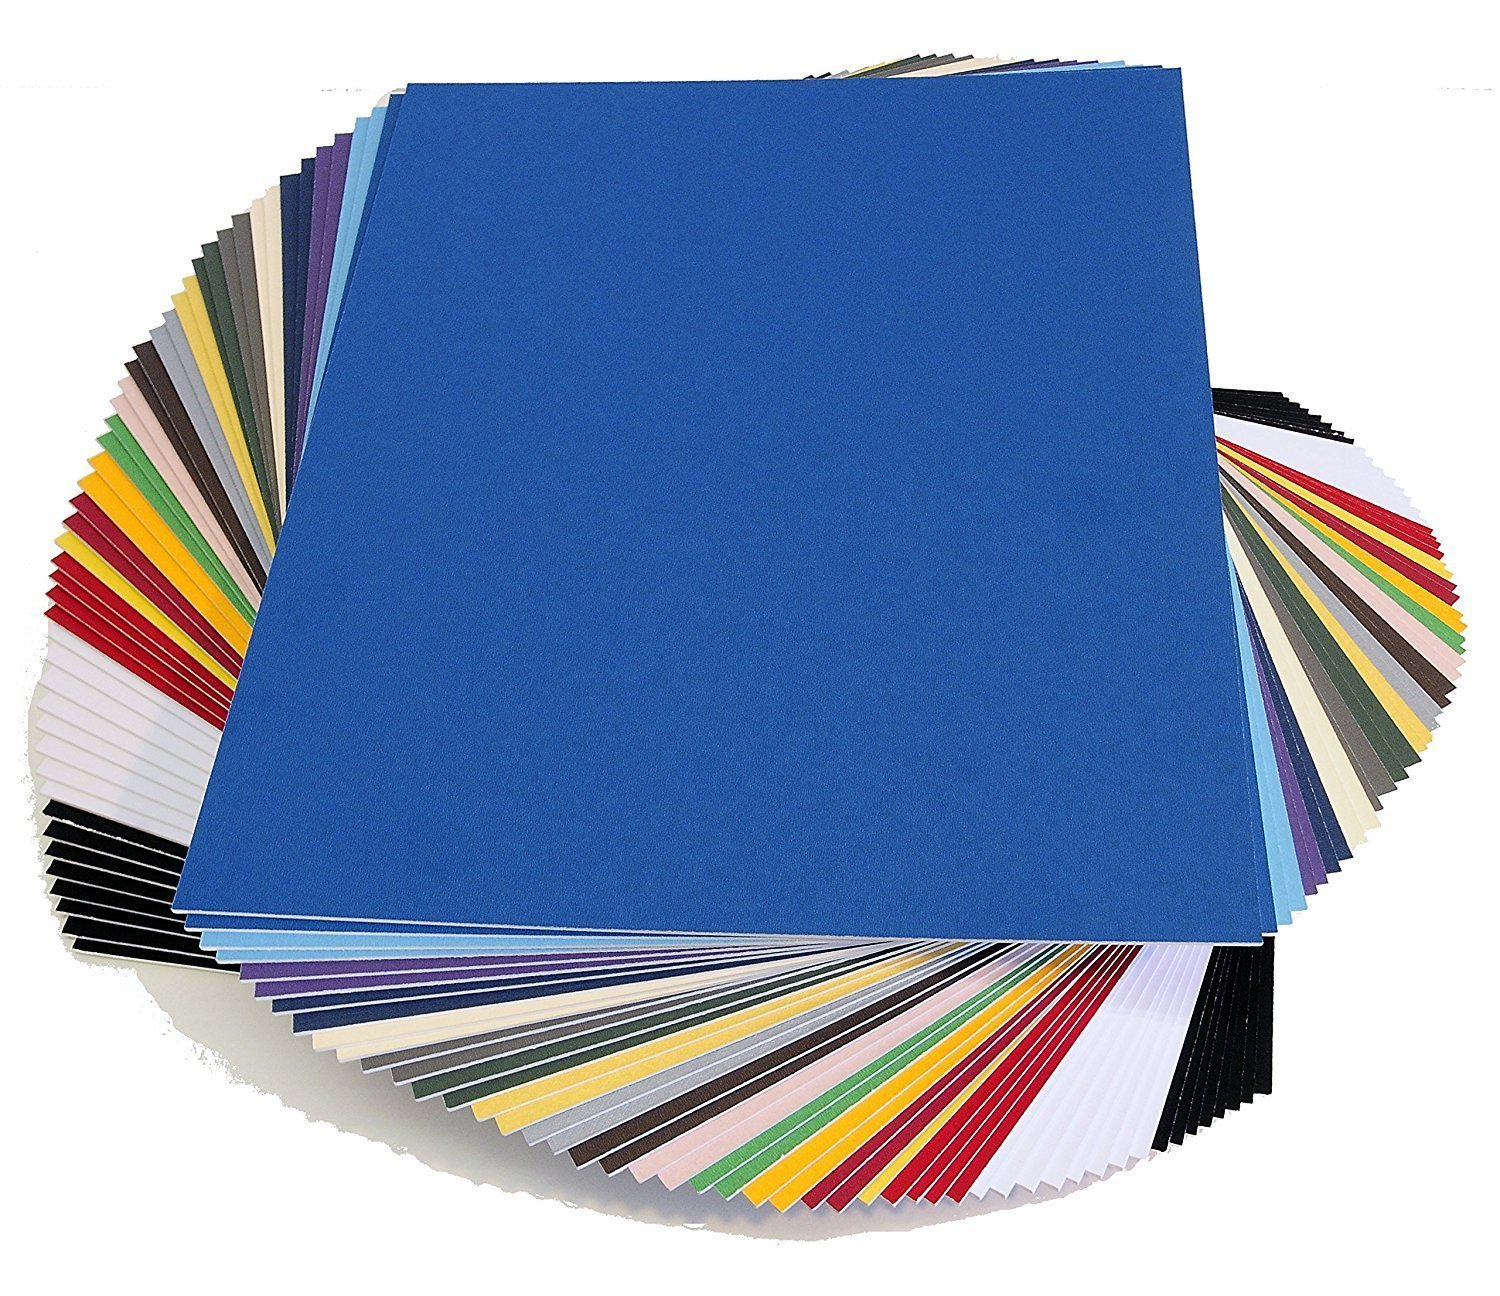 topseller100, Pack of 50 sheets 11x14 UNCUT mat matboard MIX Color by Unknown